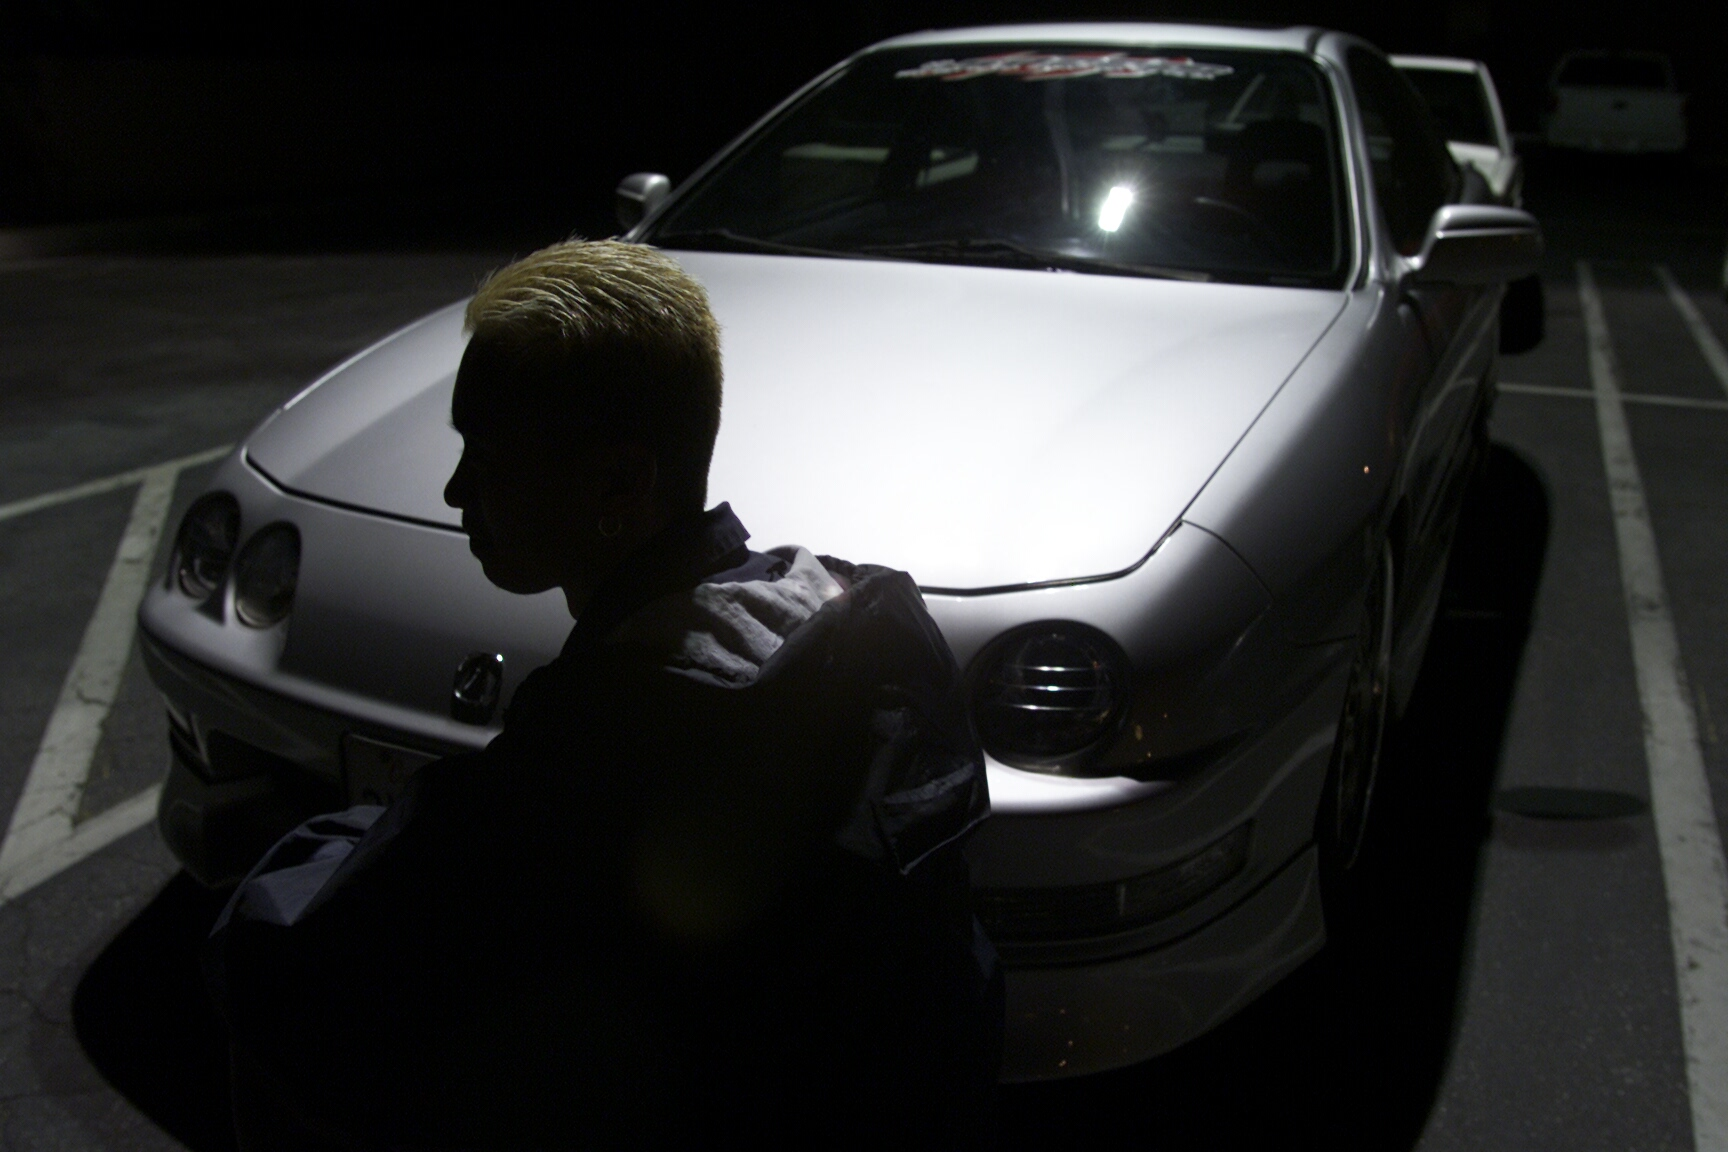 A '90s white Acura Integra and its driver shot from the front 3/4